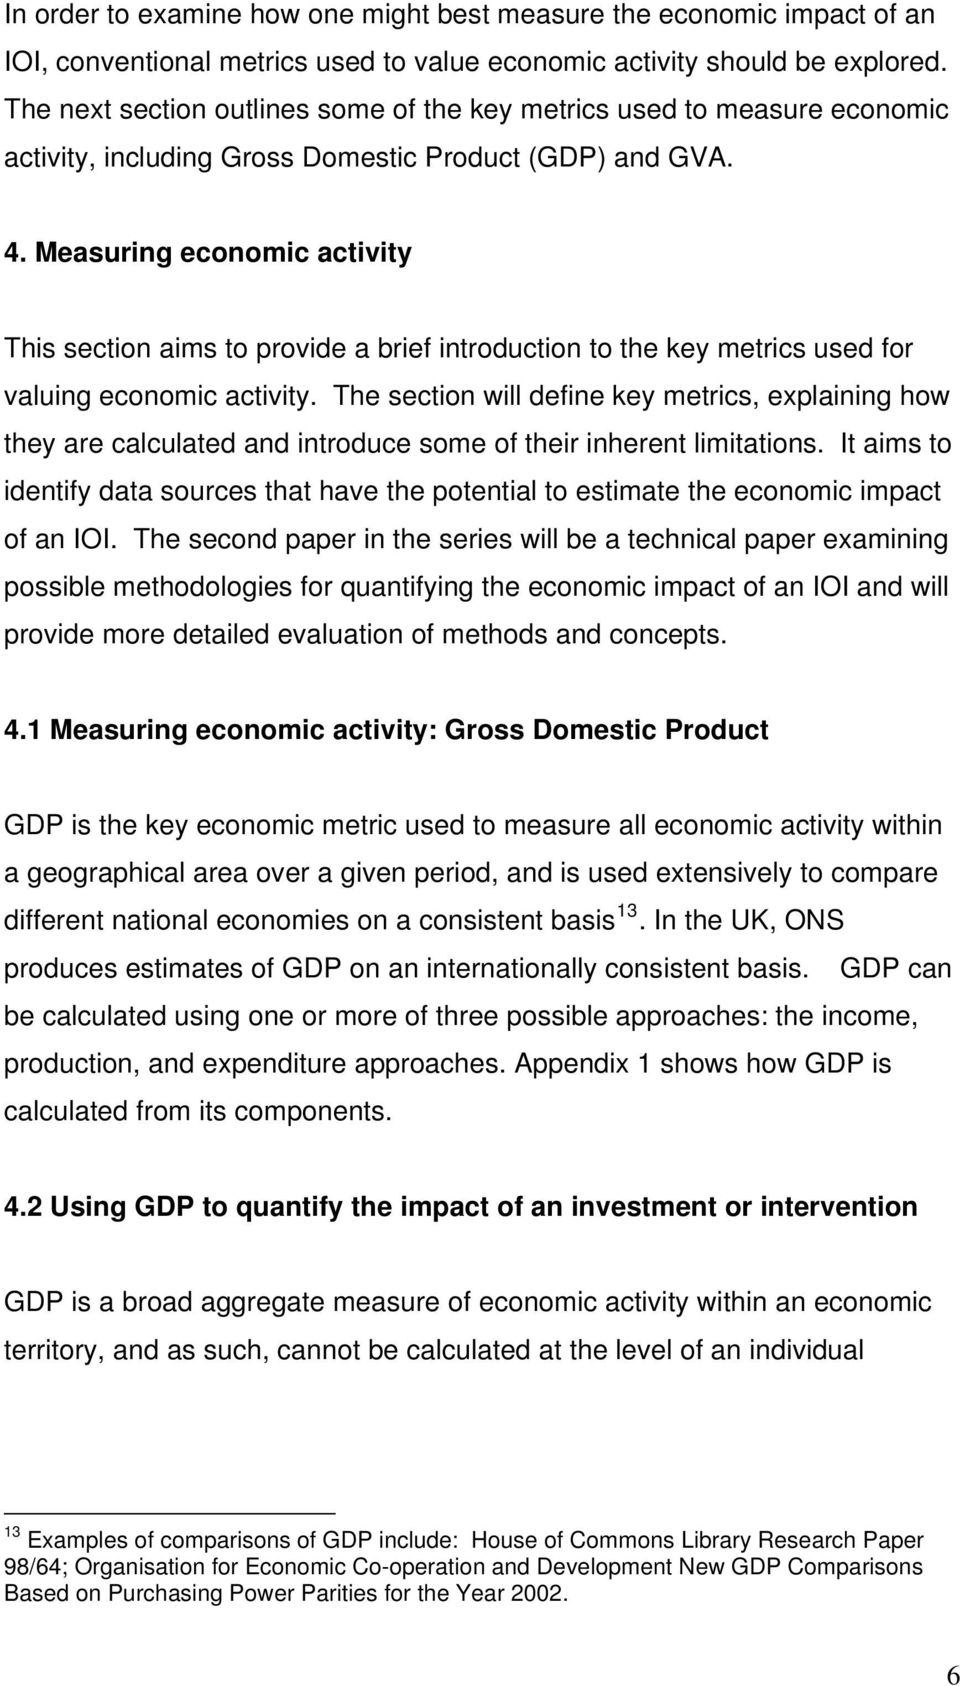 Measuring economic activity This section aims to provide a brief introduction to the key metrics used for valuing economic activity.